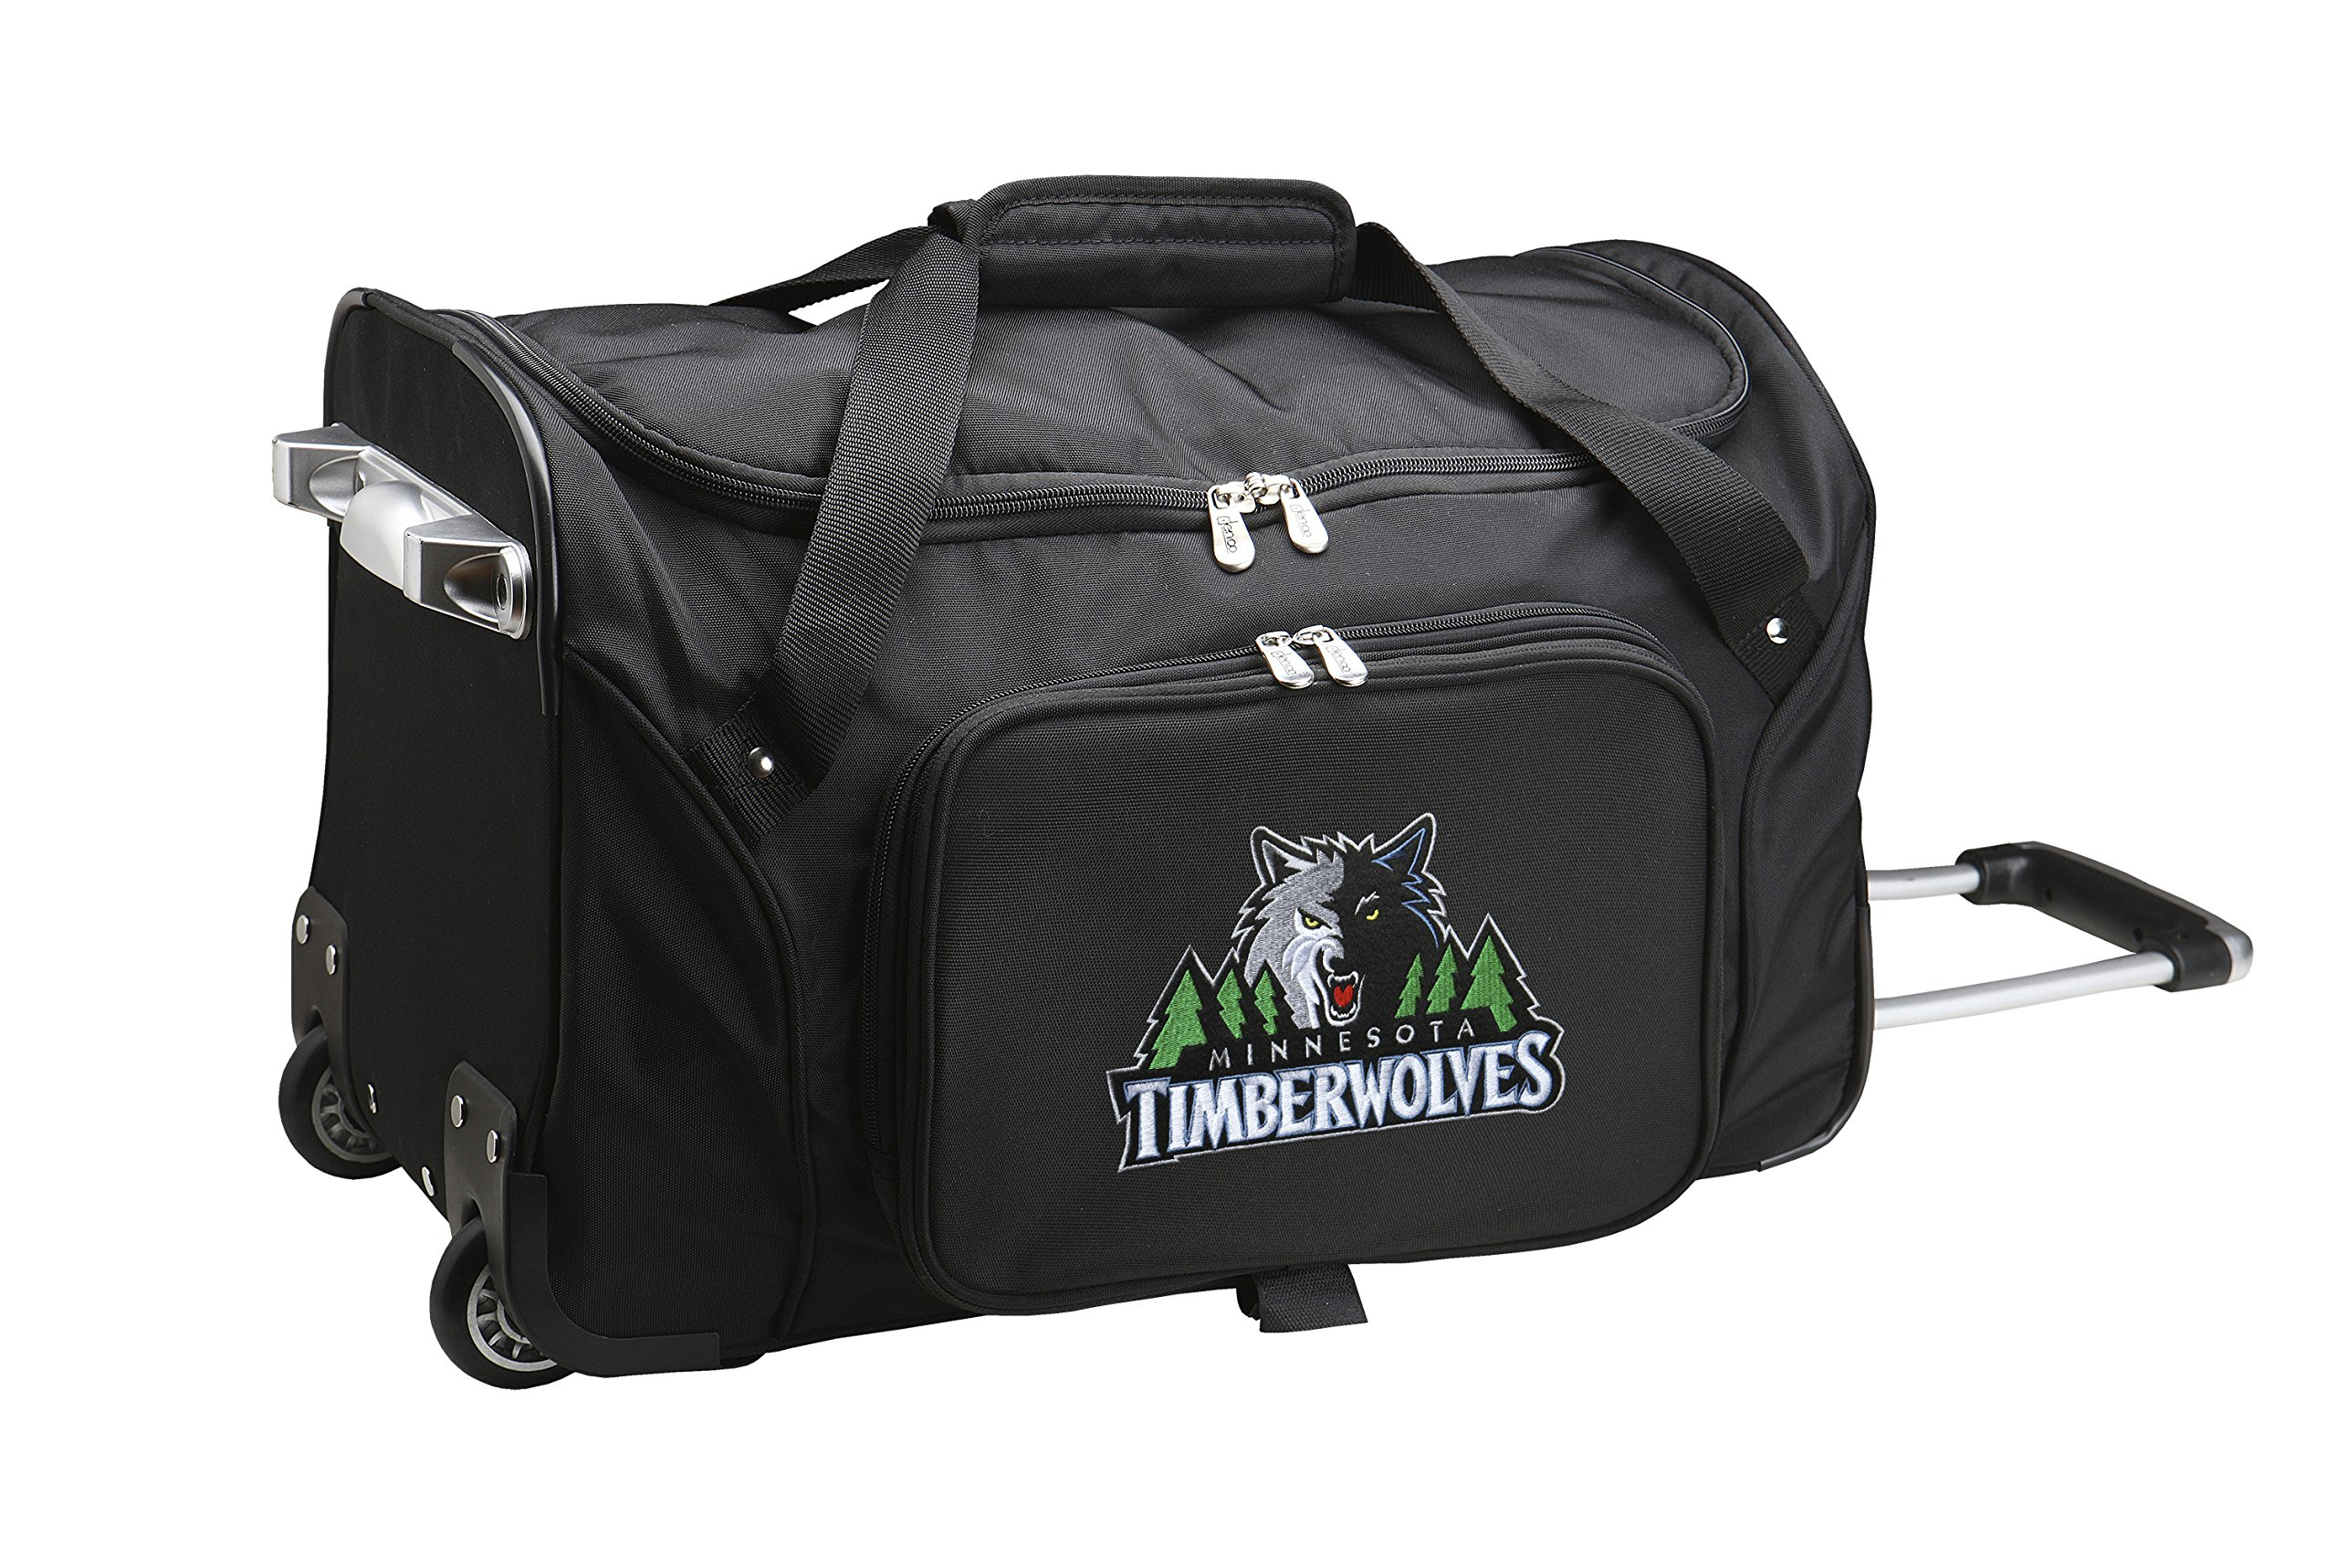 NBA Minnesota Timberwolves Wheeled Duffle Bag, 22 x 12 x 5.5'', Black